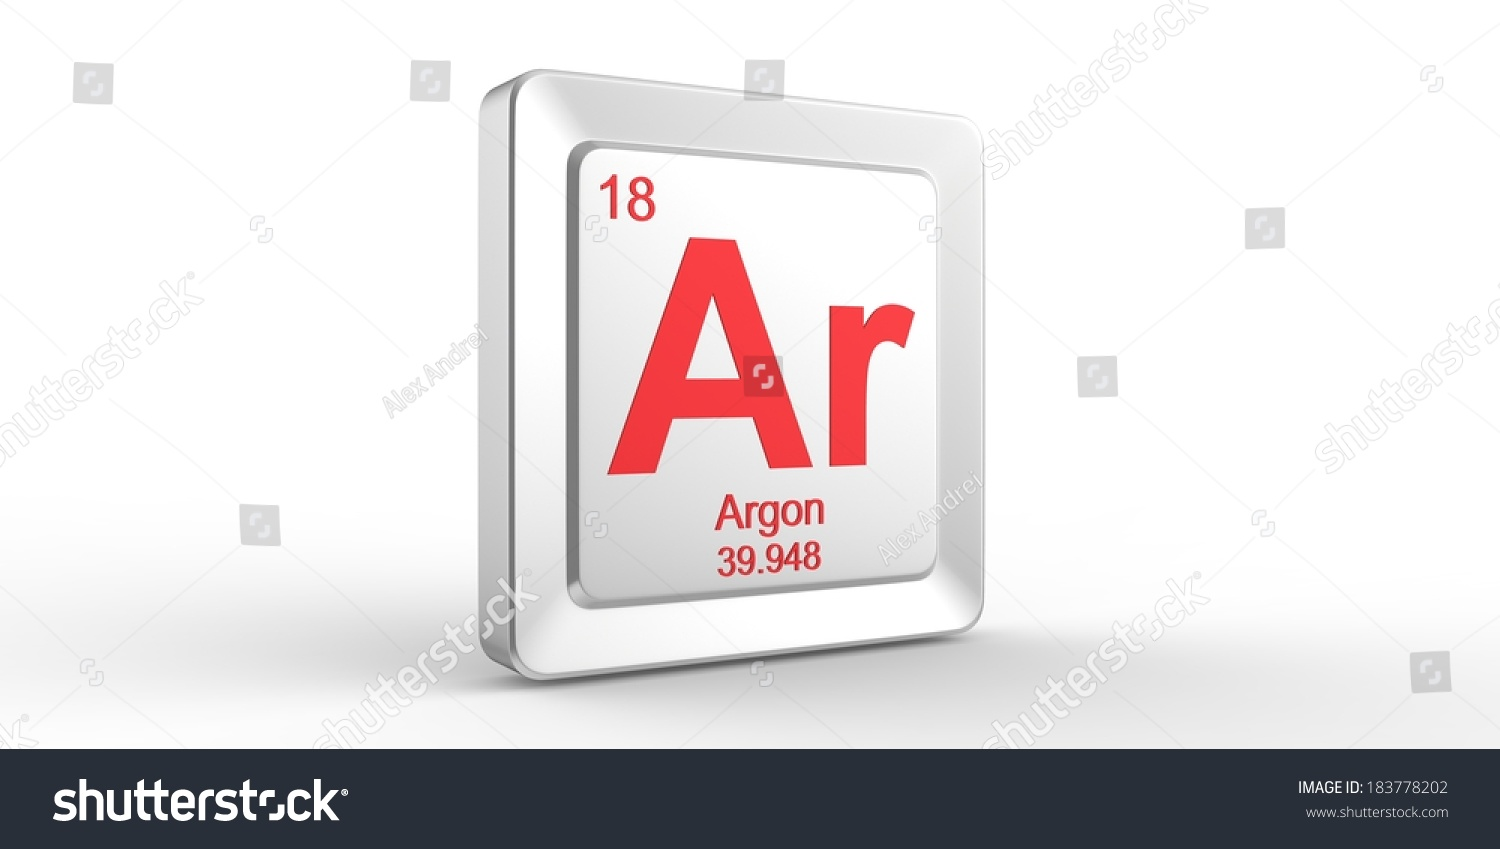 Ar symbol 18 material argon chemical stock illustration 183778202 ar symbol 18 material for argon chemical element of the periodic table gamestrikefo Choice Image